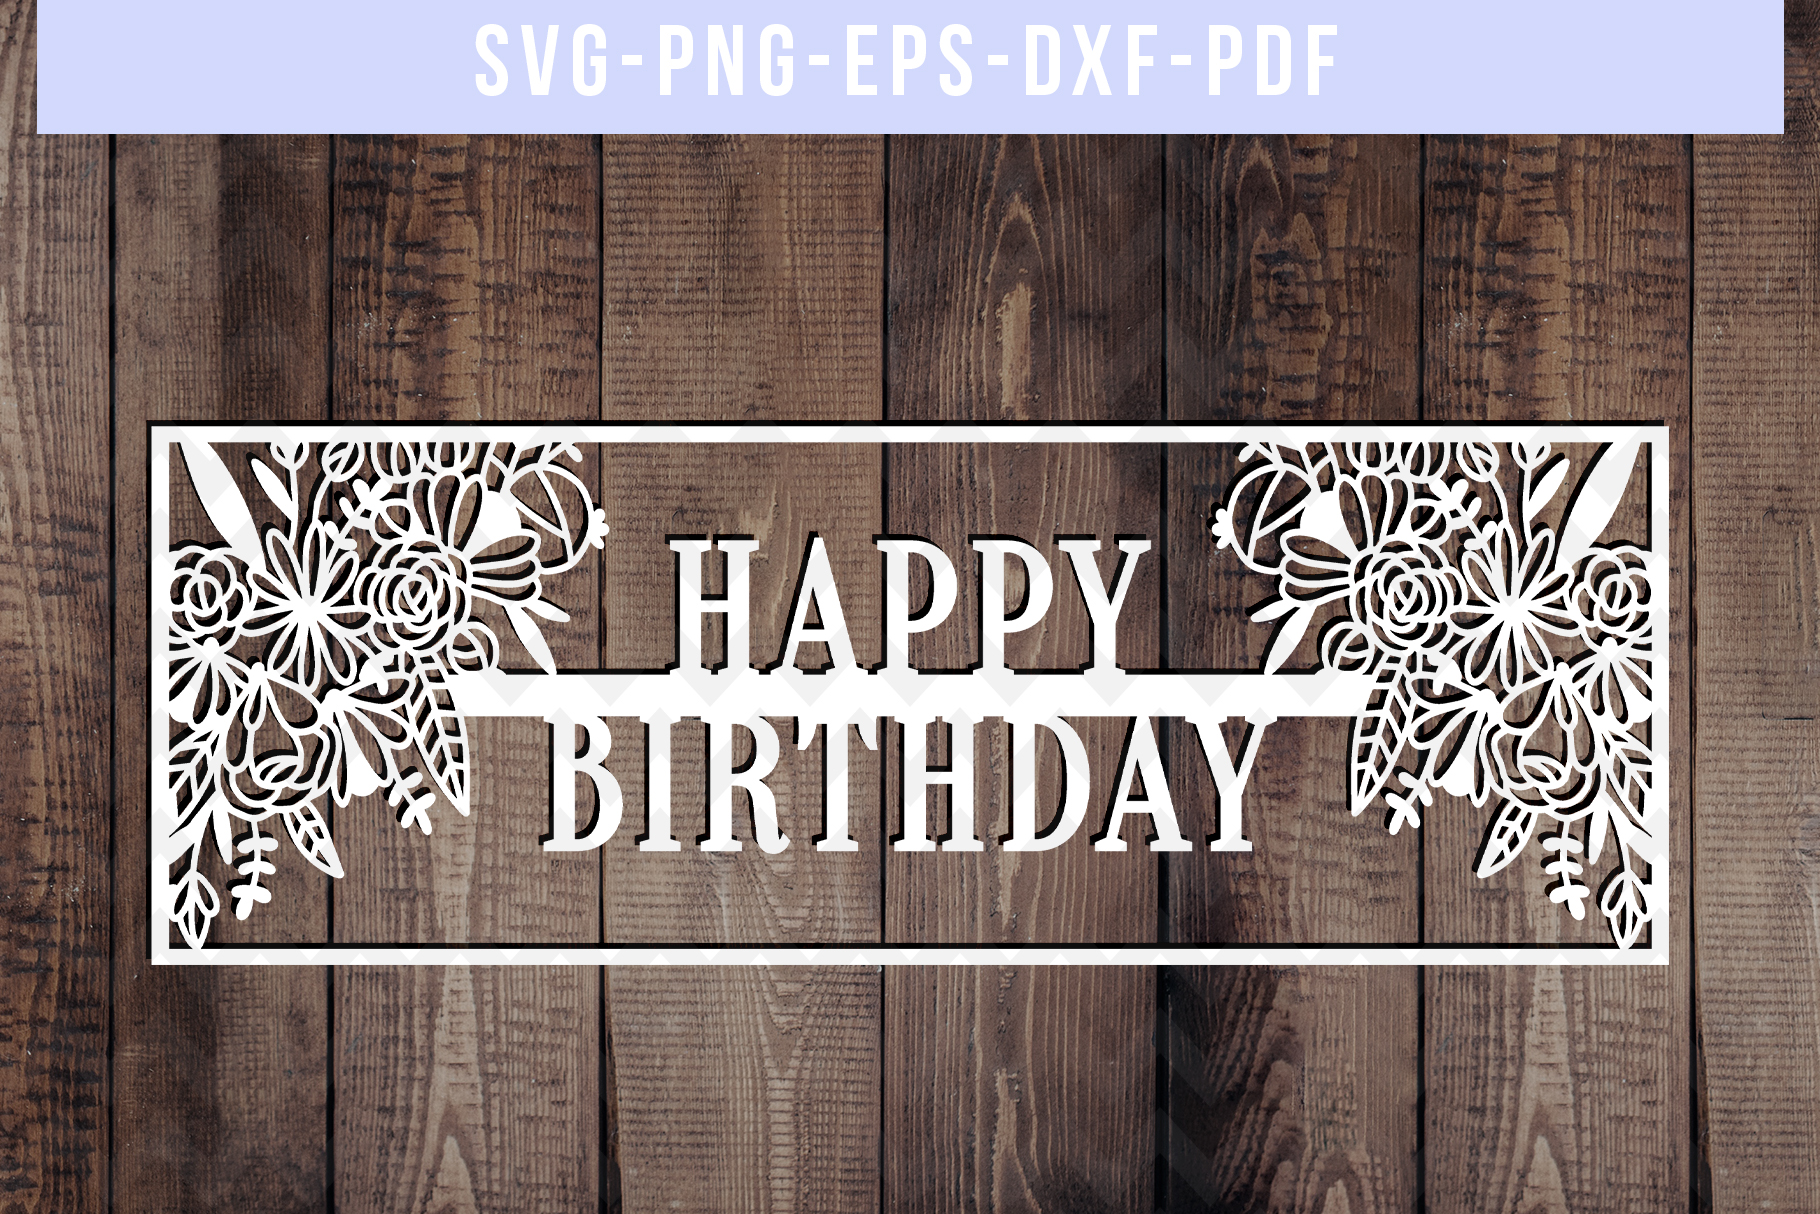 Happy Birthday Papercut Template, Birthday Frame SVG PDF DXF example image 1